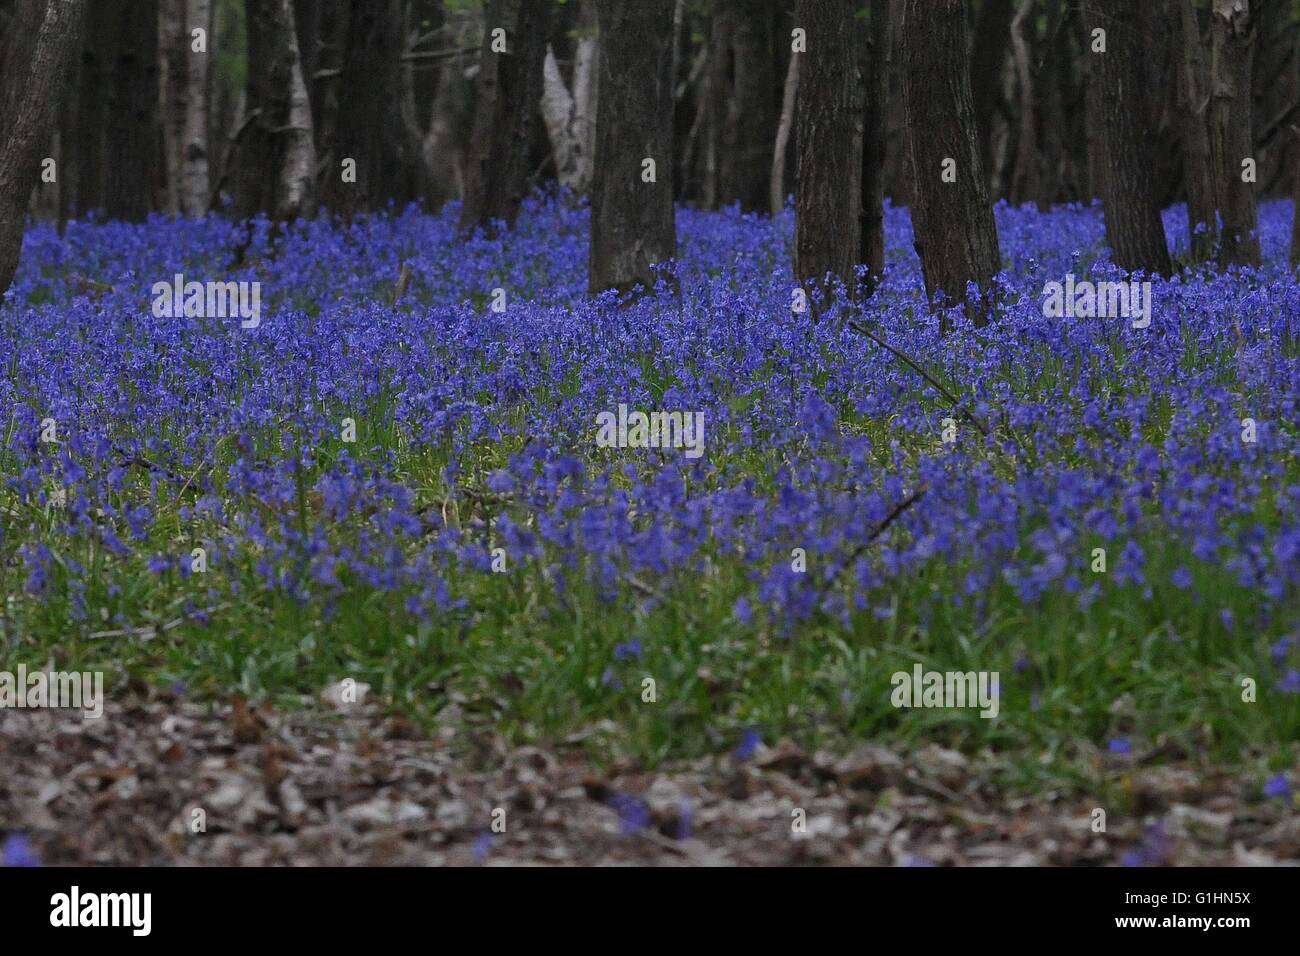 Bluebell Woods and individual flowers - Stock Image